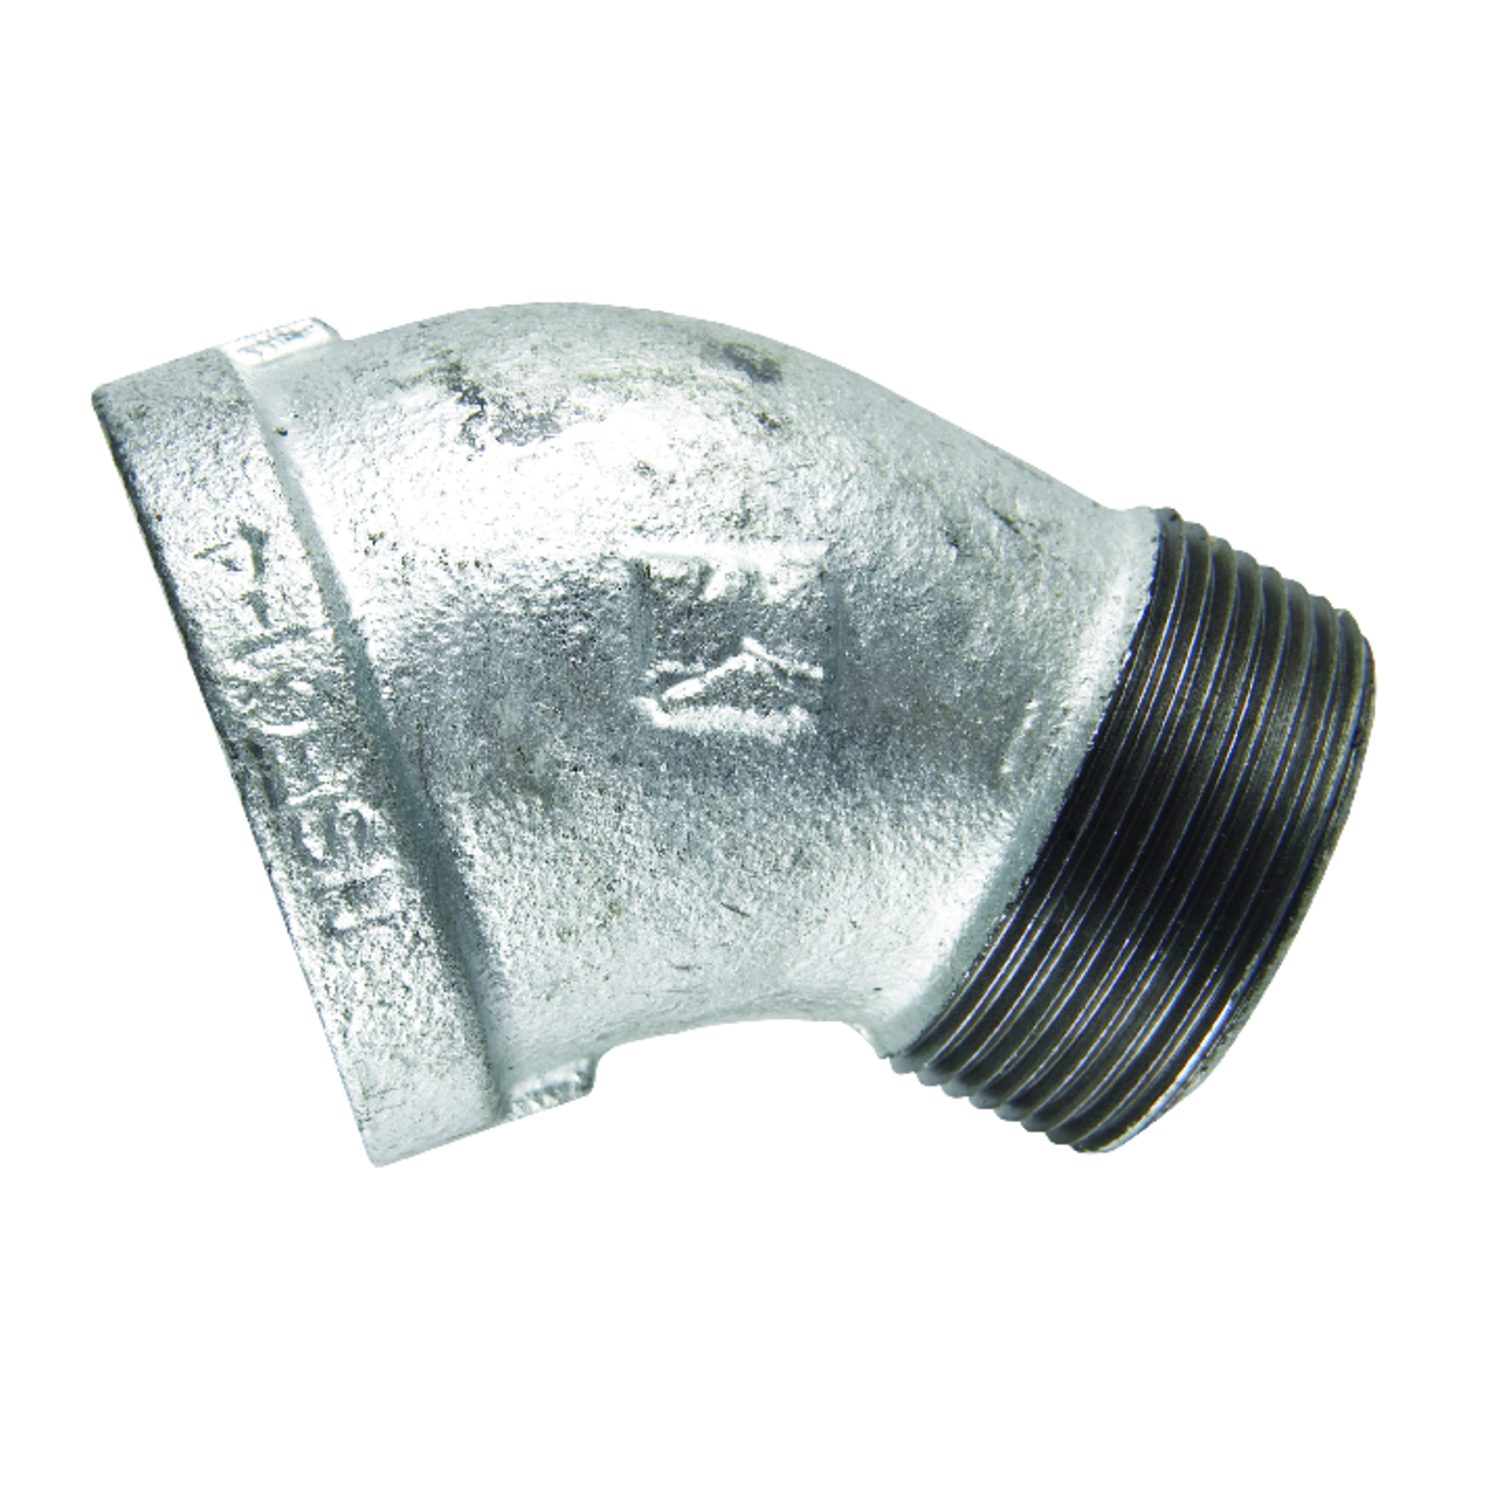 B & K  1/4 in. FPT   x 1/4 in. Dia. MPT  Galvanized  Malleable Iron  Street Elbow